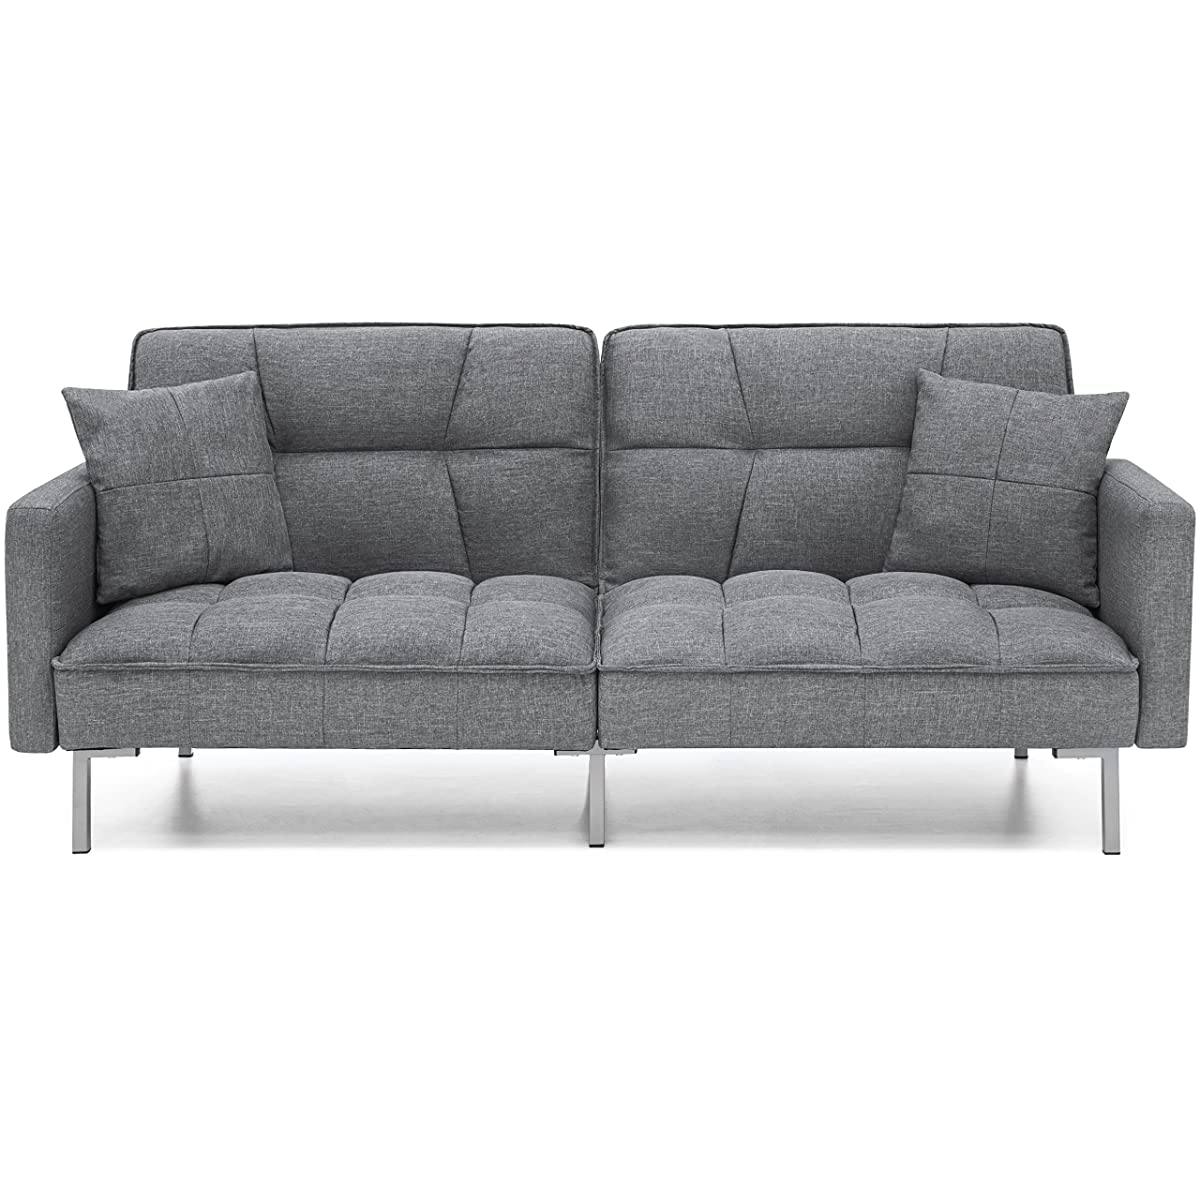 Best Choice Products Living Room Convertible Linen Fabric Tufted Splitback Futon Couch Furniture w/Pillows - Dark Gray